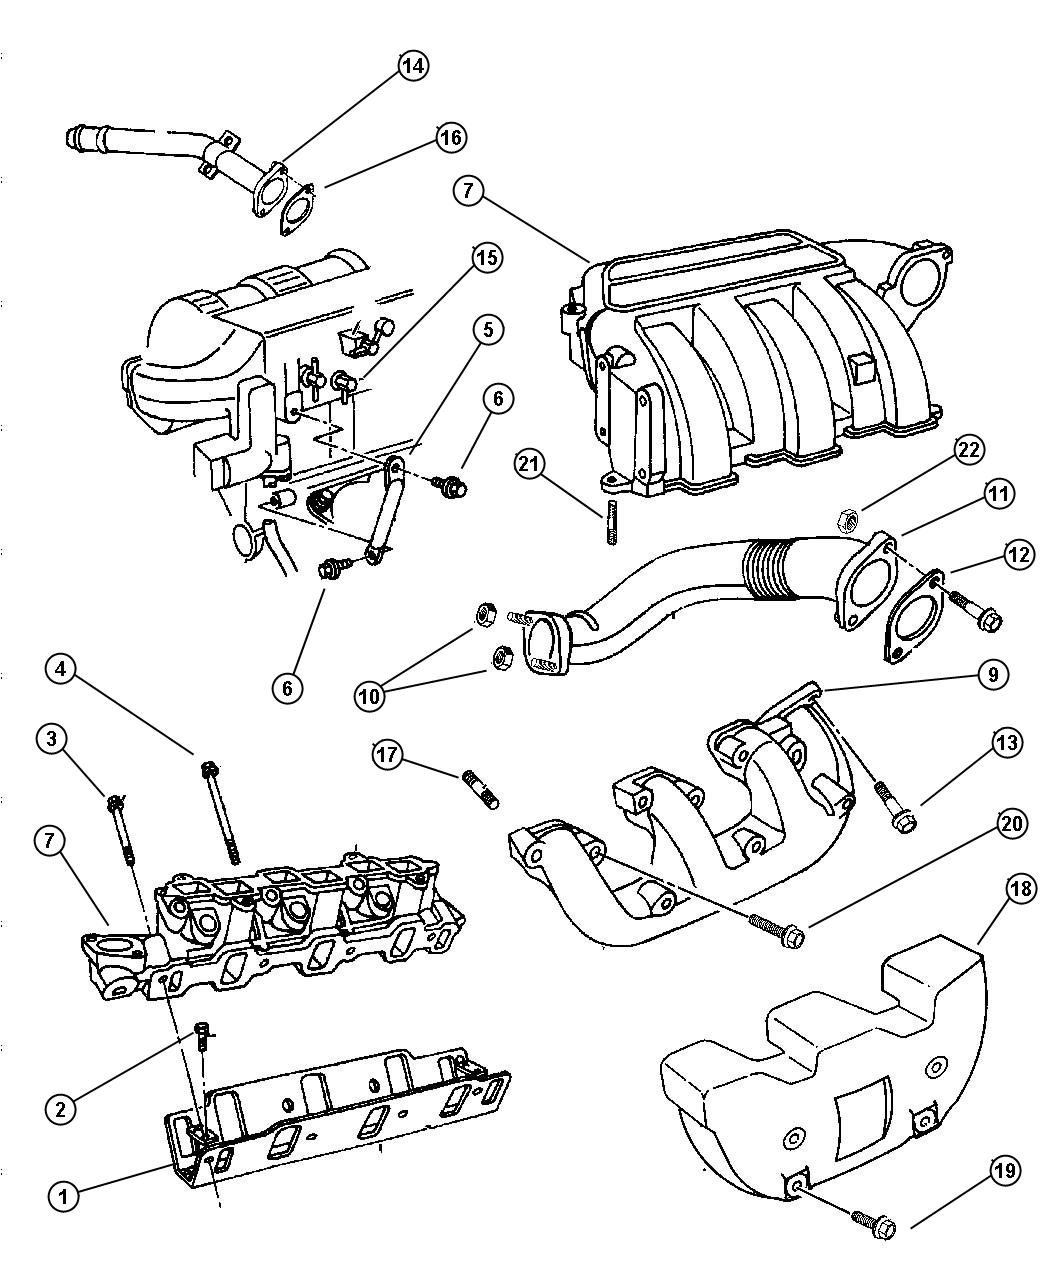 2003 Plymouth Voyager Engine Diagram Wiring Diagrams For Chrysler Town And Country Car Interior Design Dodge Intrepid